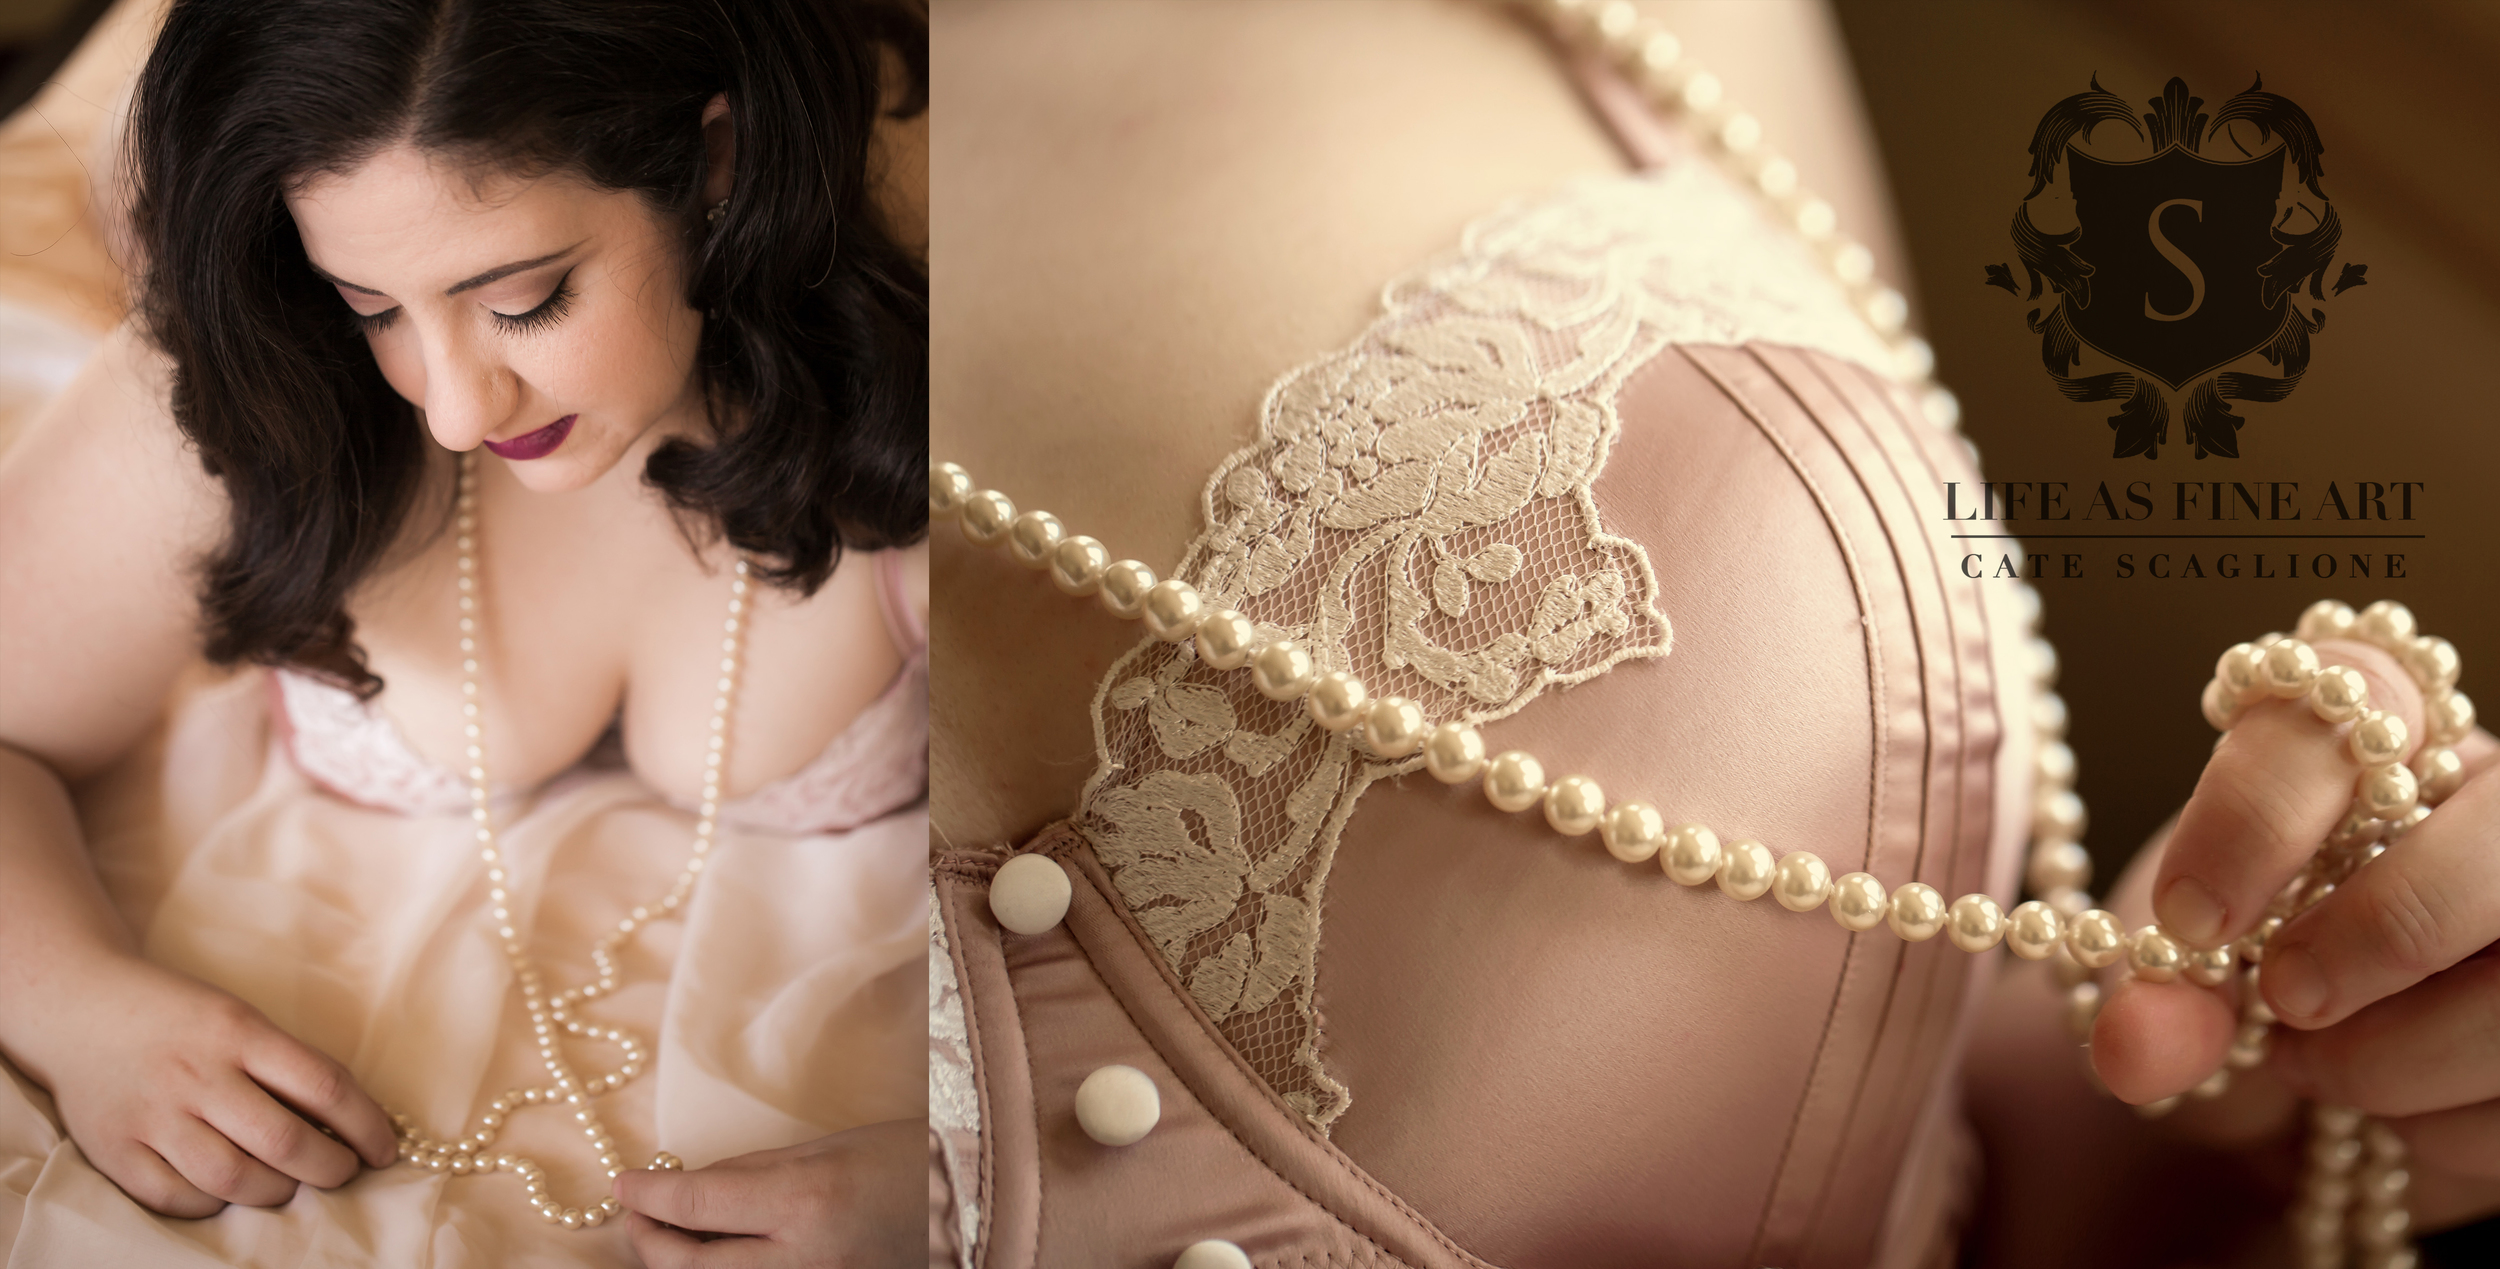 NEW JERSEY AND NEW YORK CITY BOUDOIR PHOTOGRAPHER   does some personal shopping for you, based on your body type. See the fabulous finds below!